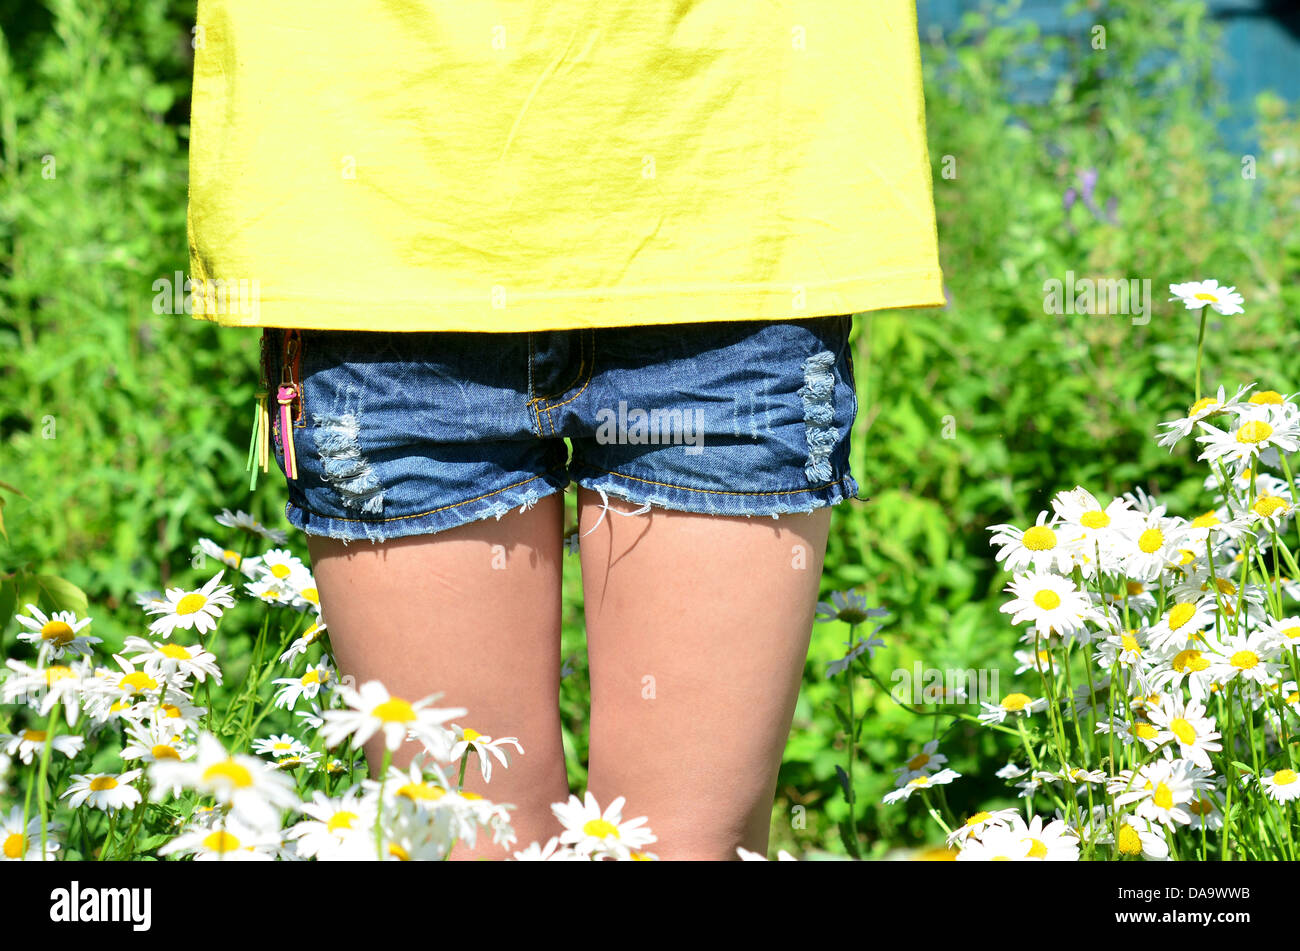 part of woman body against summer background - Stock Image